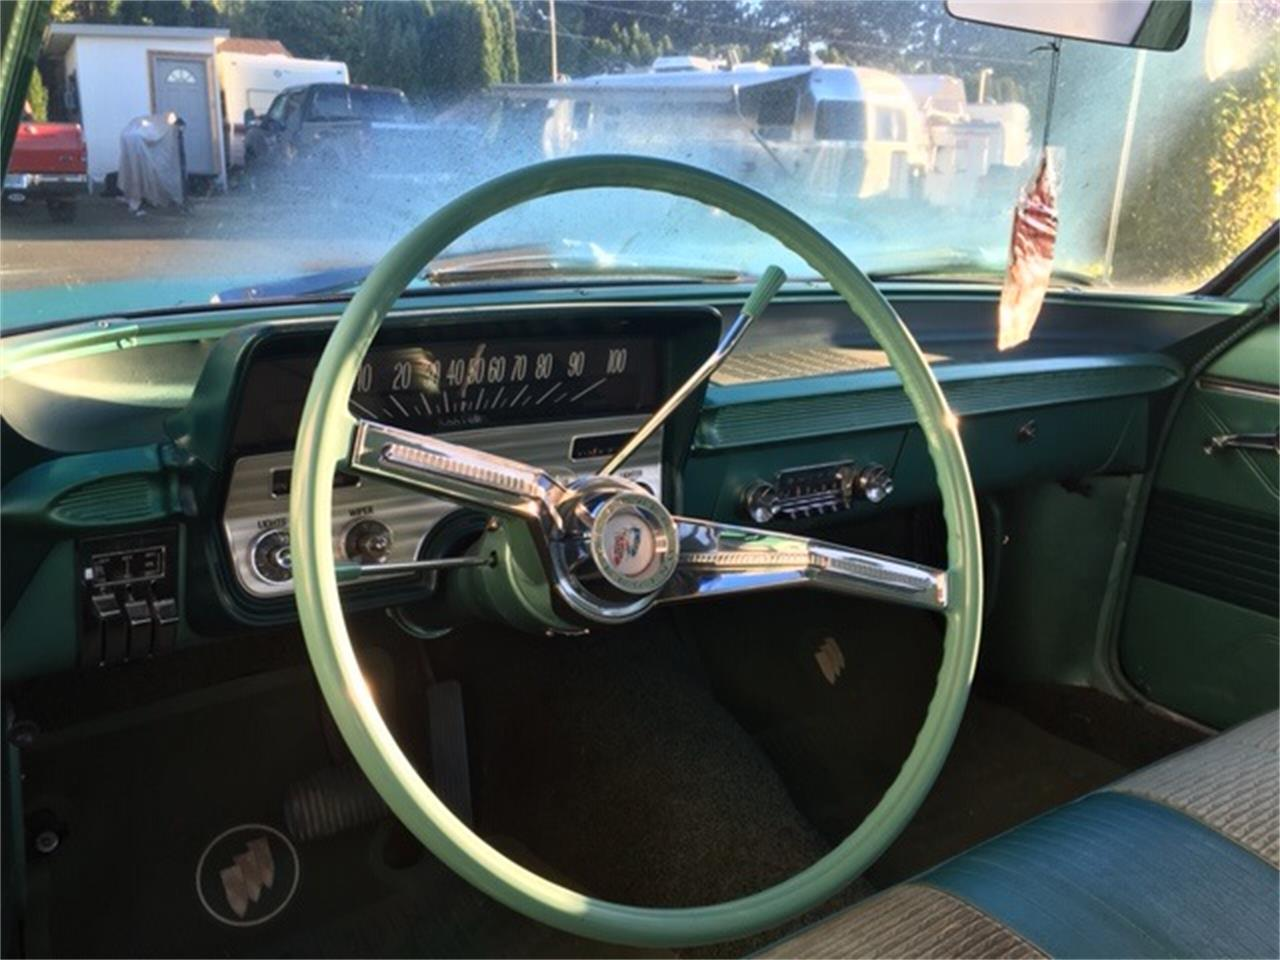 Large Picture of '61 Buick Special Deluxe located in Oregon - $6,850.00 - P7XC